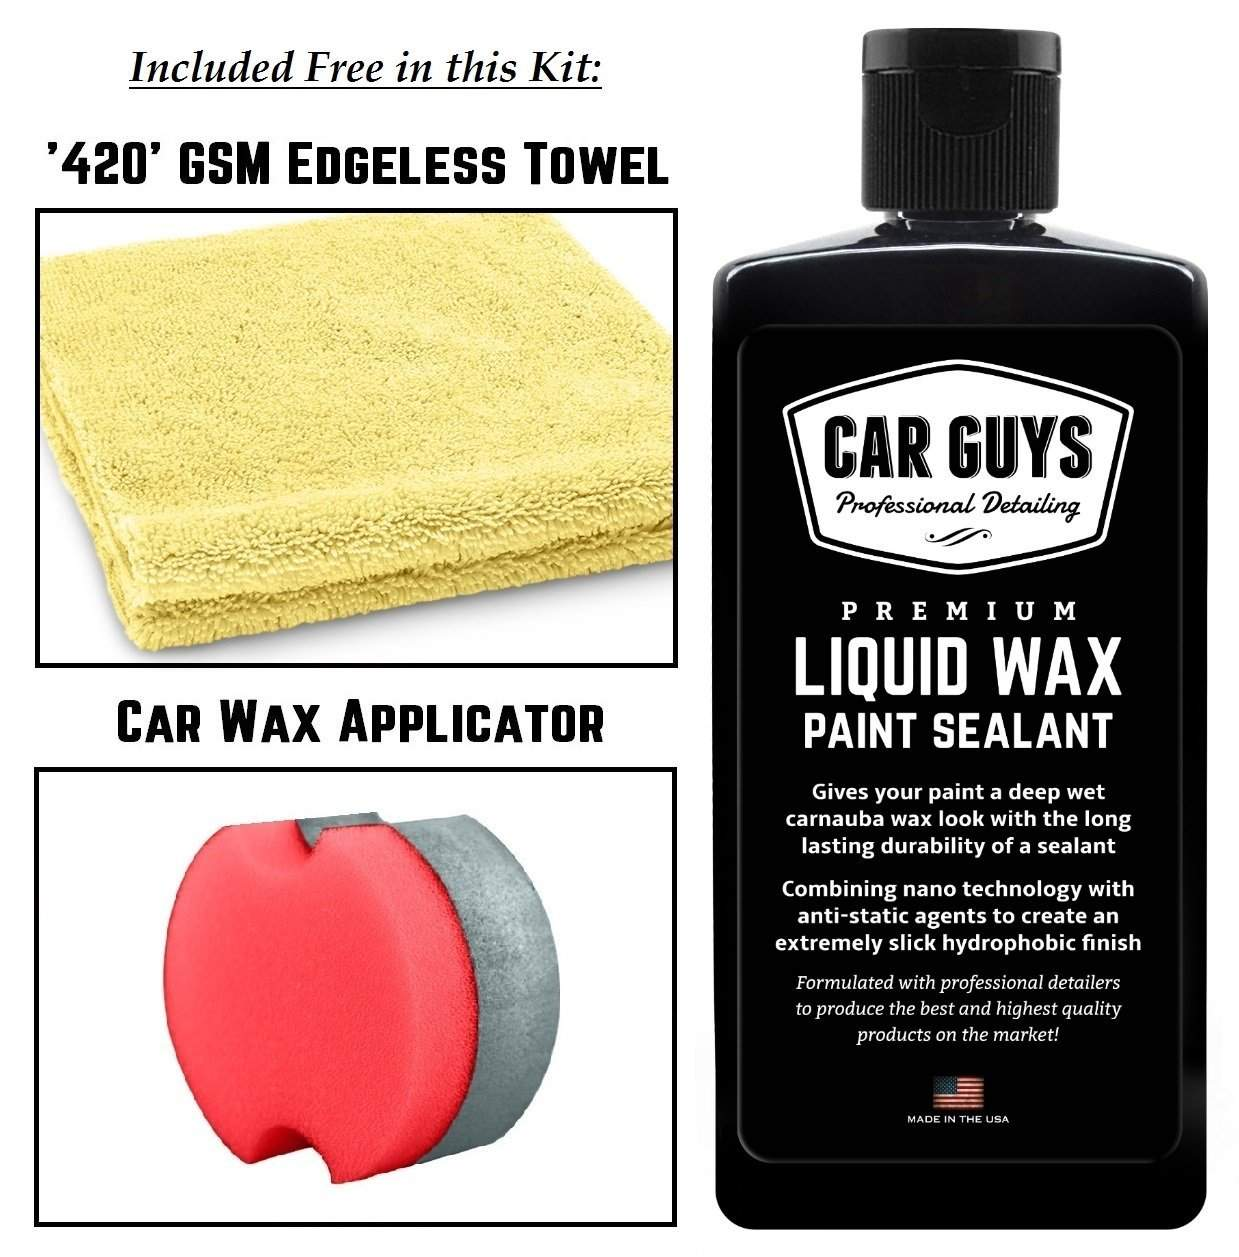 Car Guys Liquid Wax Review